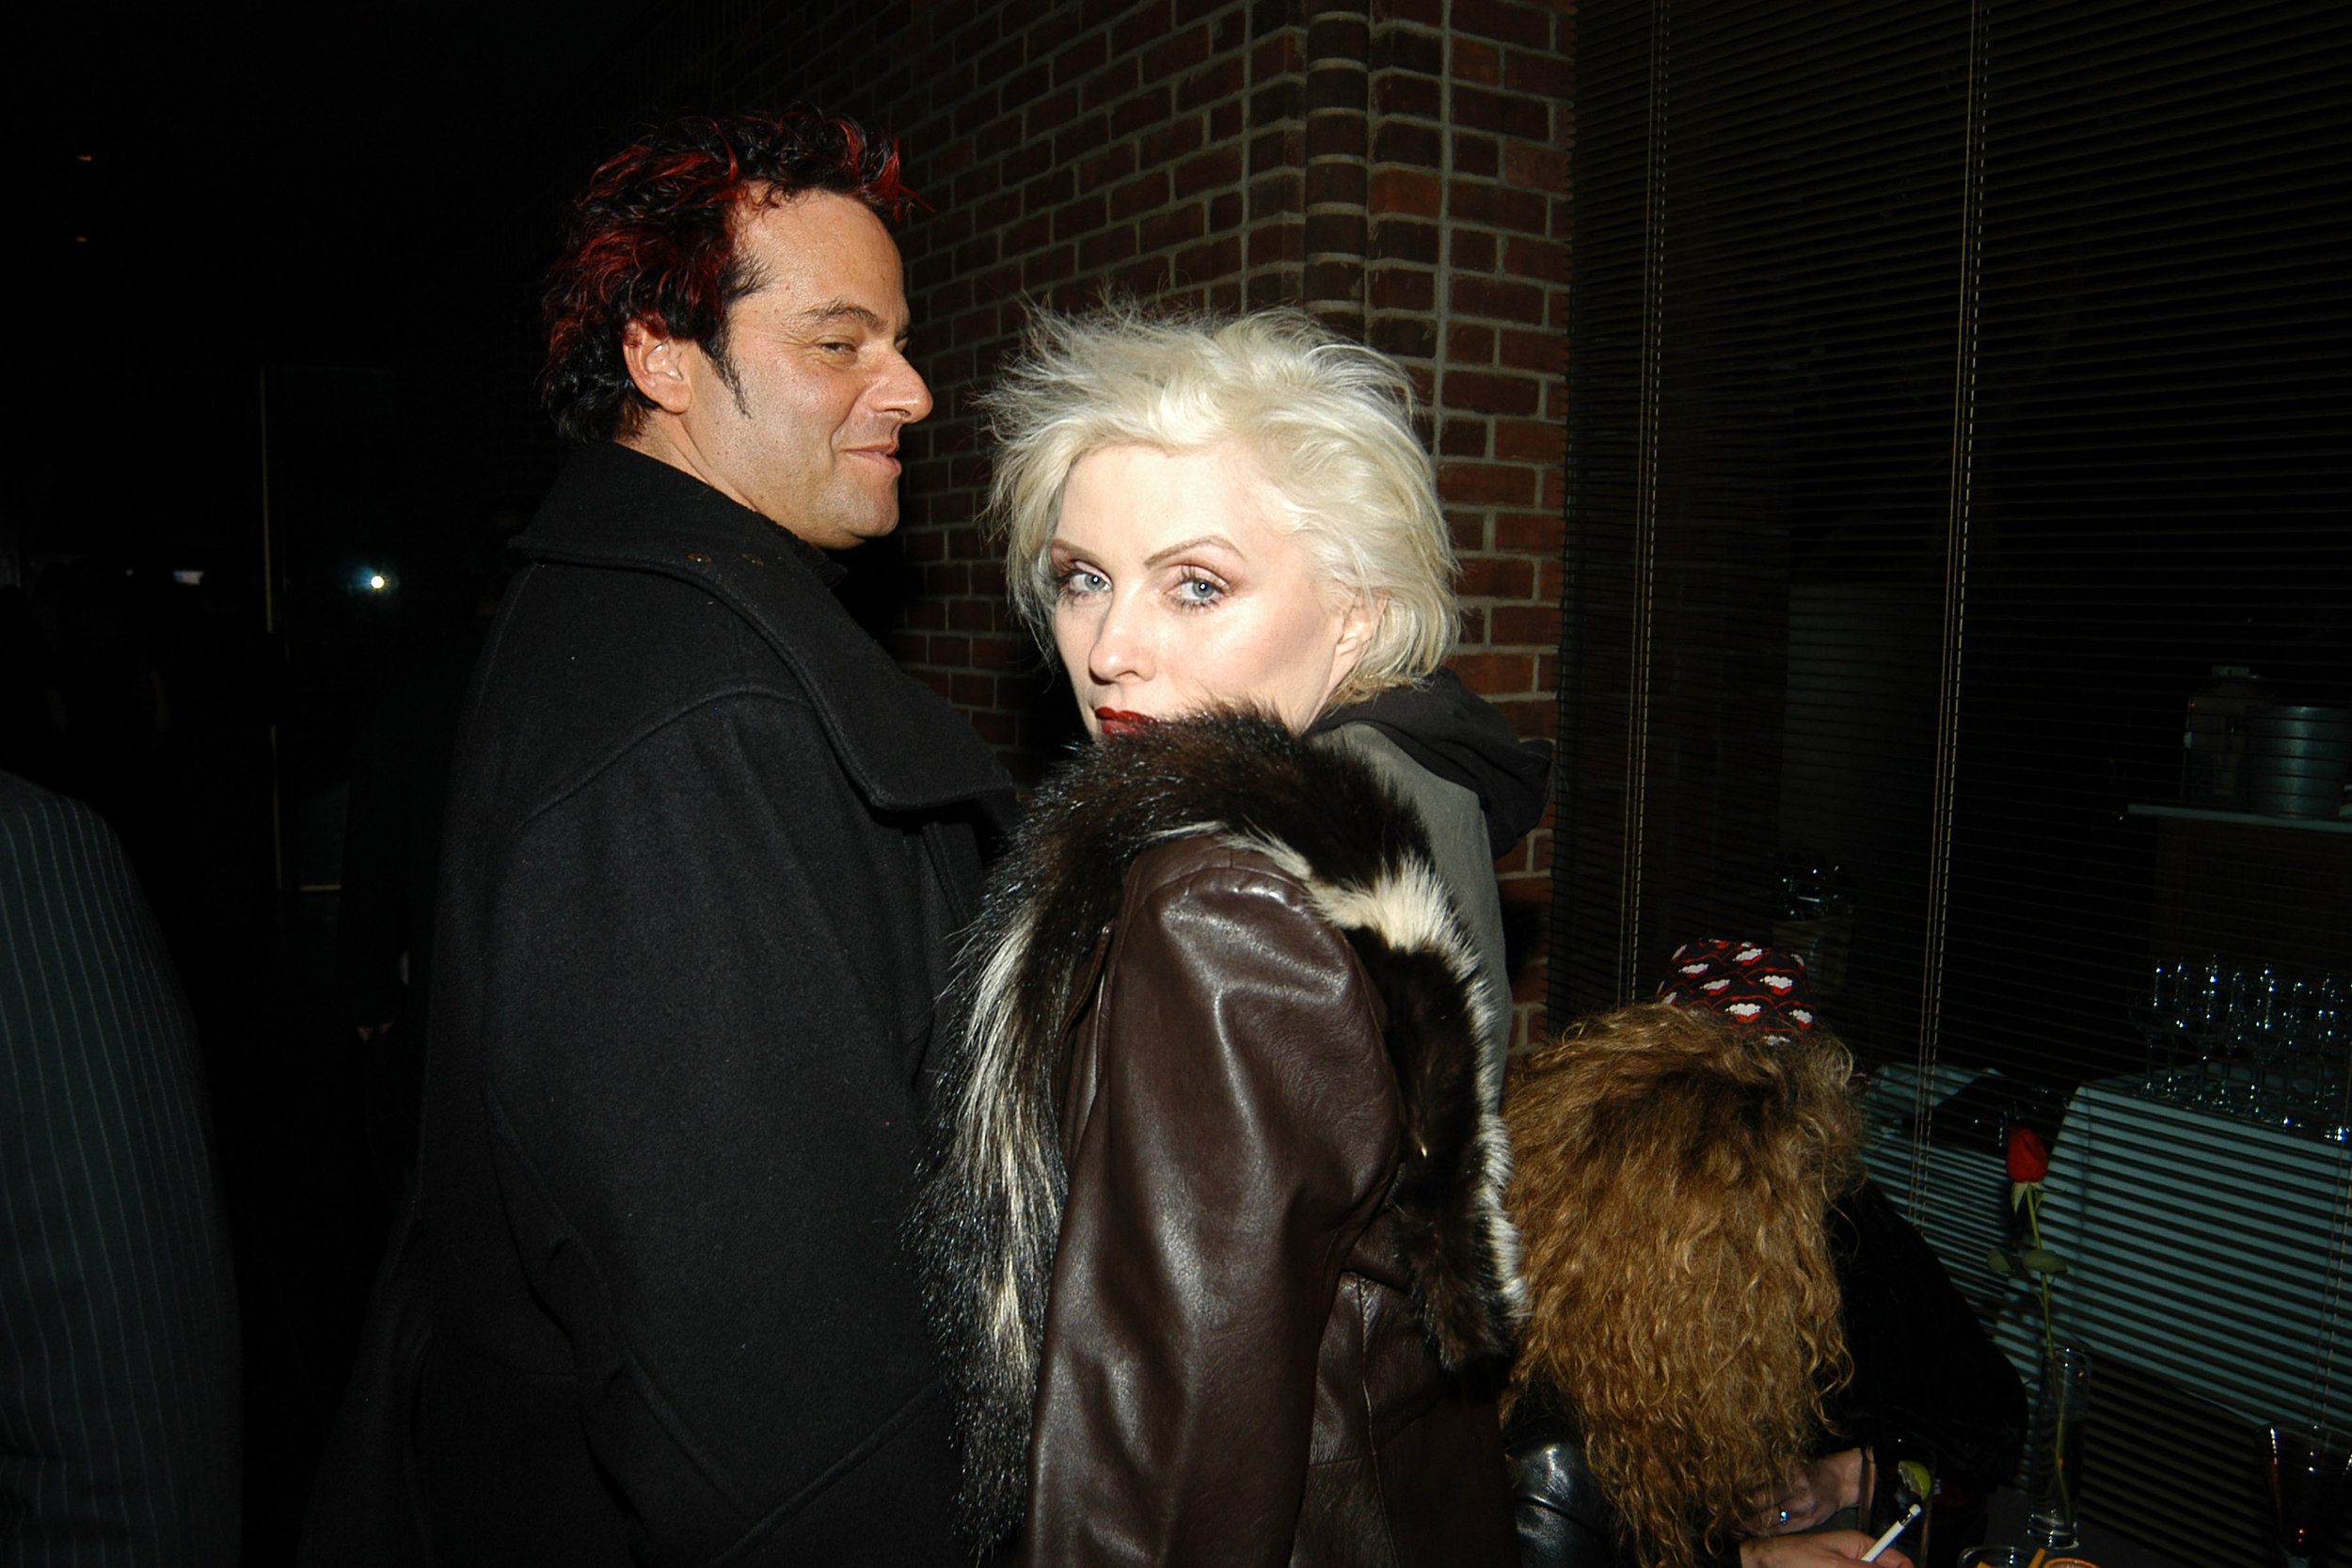 Stepping out with Debbie Harry headed to the EntertainmentTonight party after working on the new Blondie album.